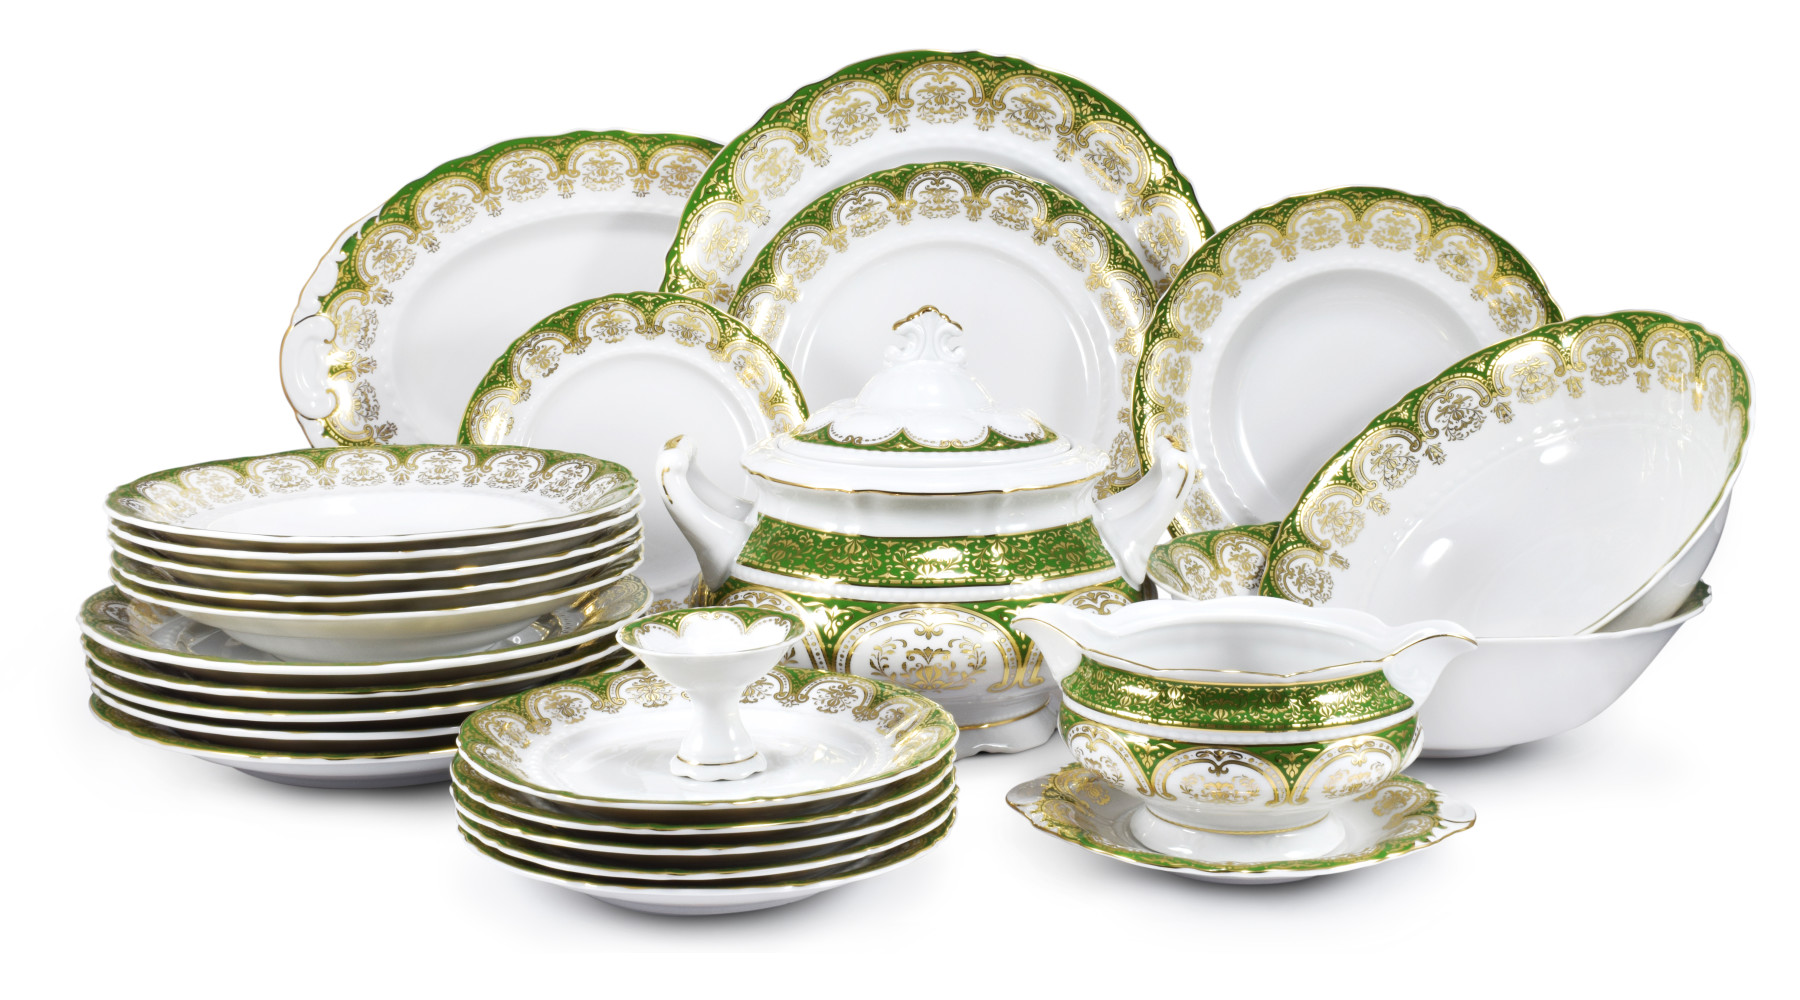 Dinner set 25-piece - Chateau sonata